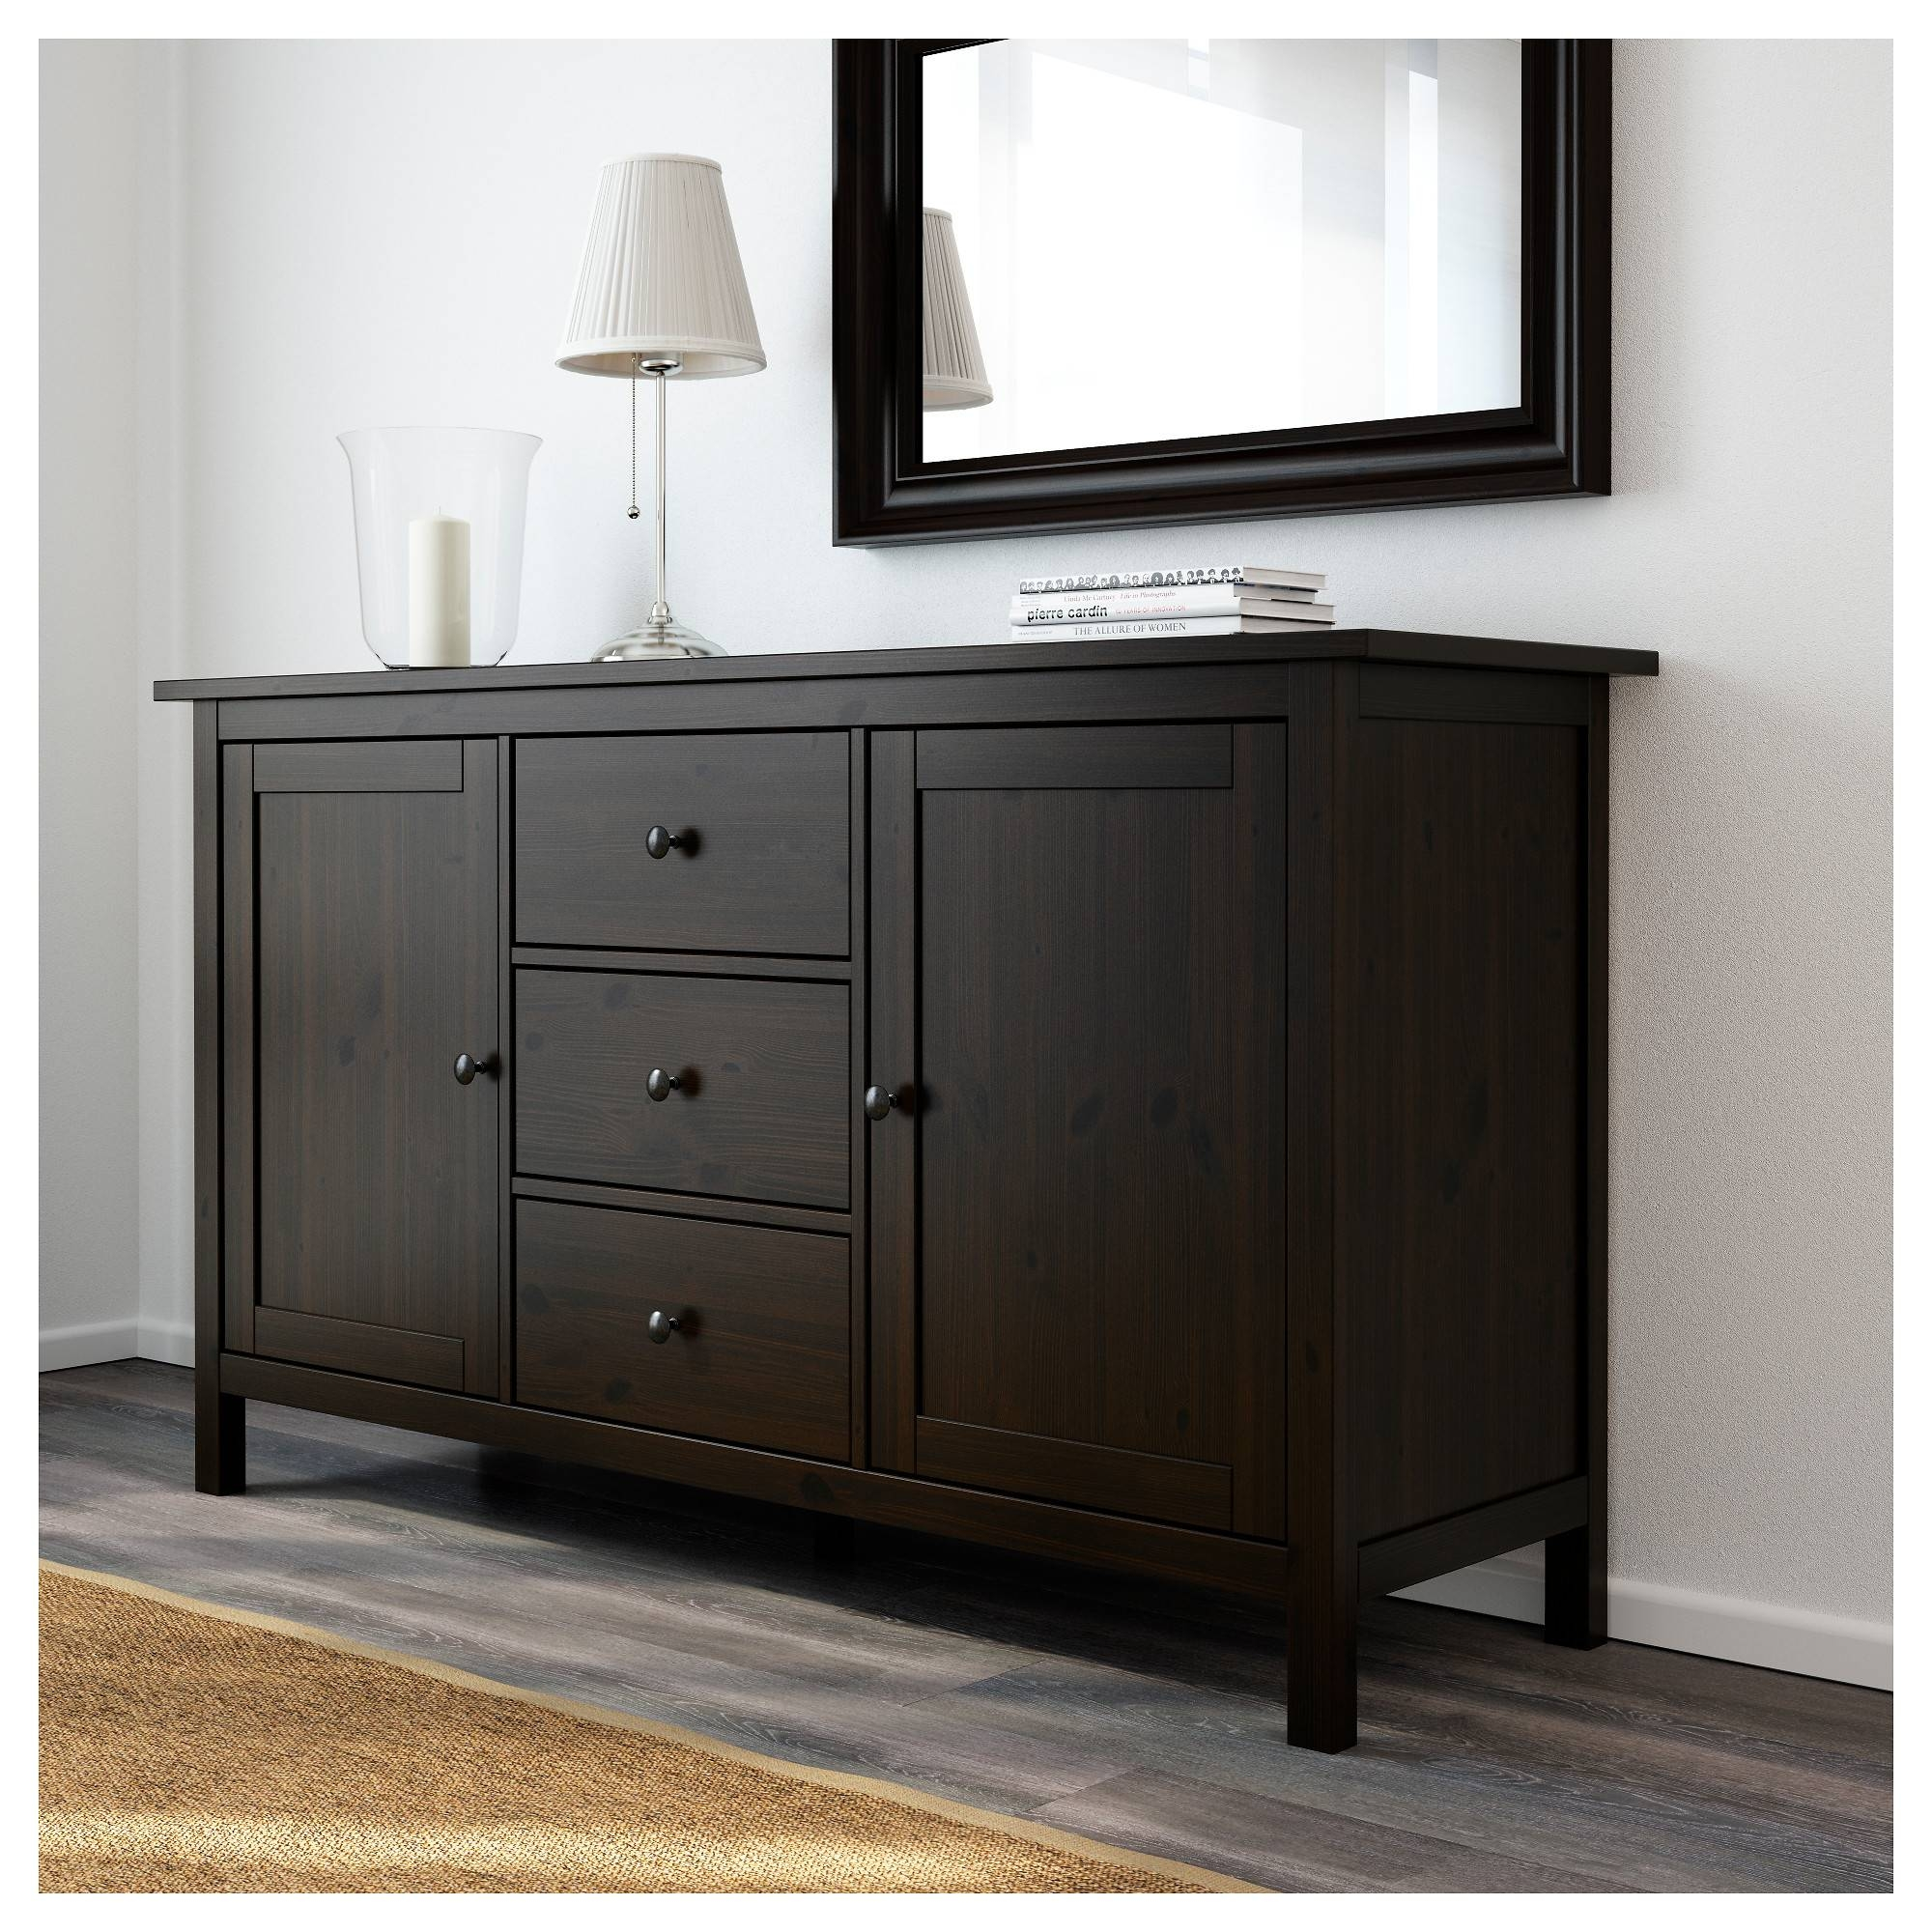 Hemnes Sideboard - Black-Brown - Ikea regarding Black Sideboards and Buffets (Image 8 of 15)